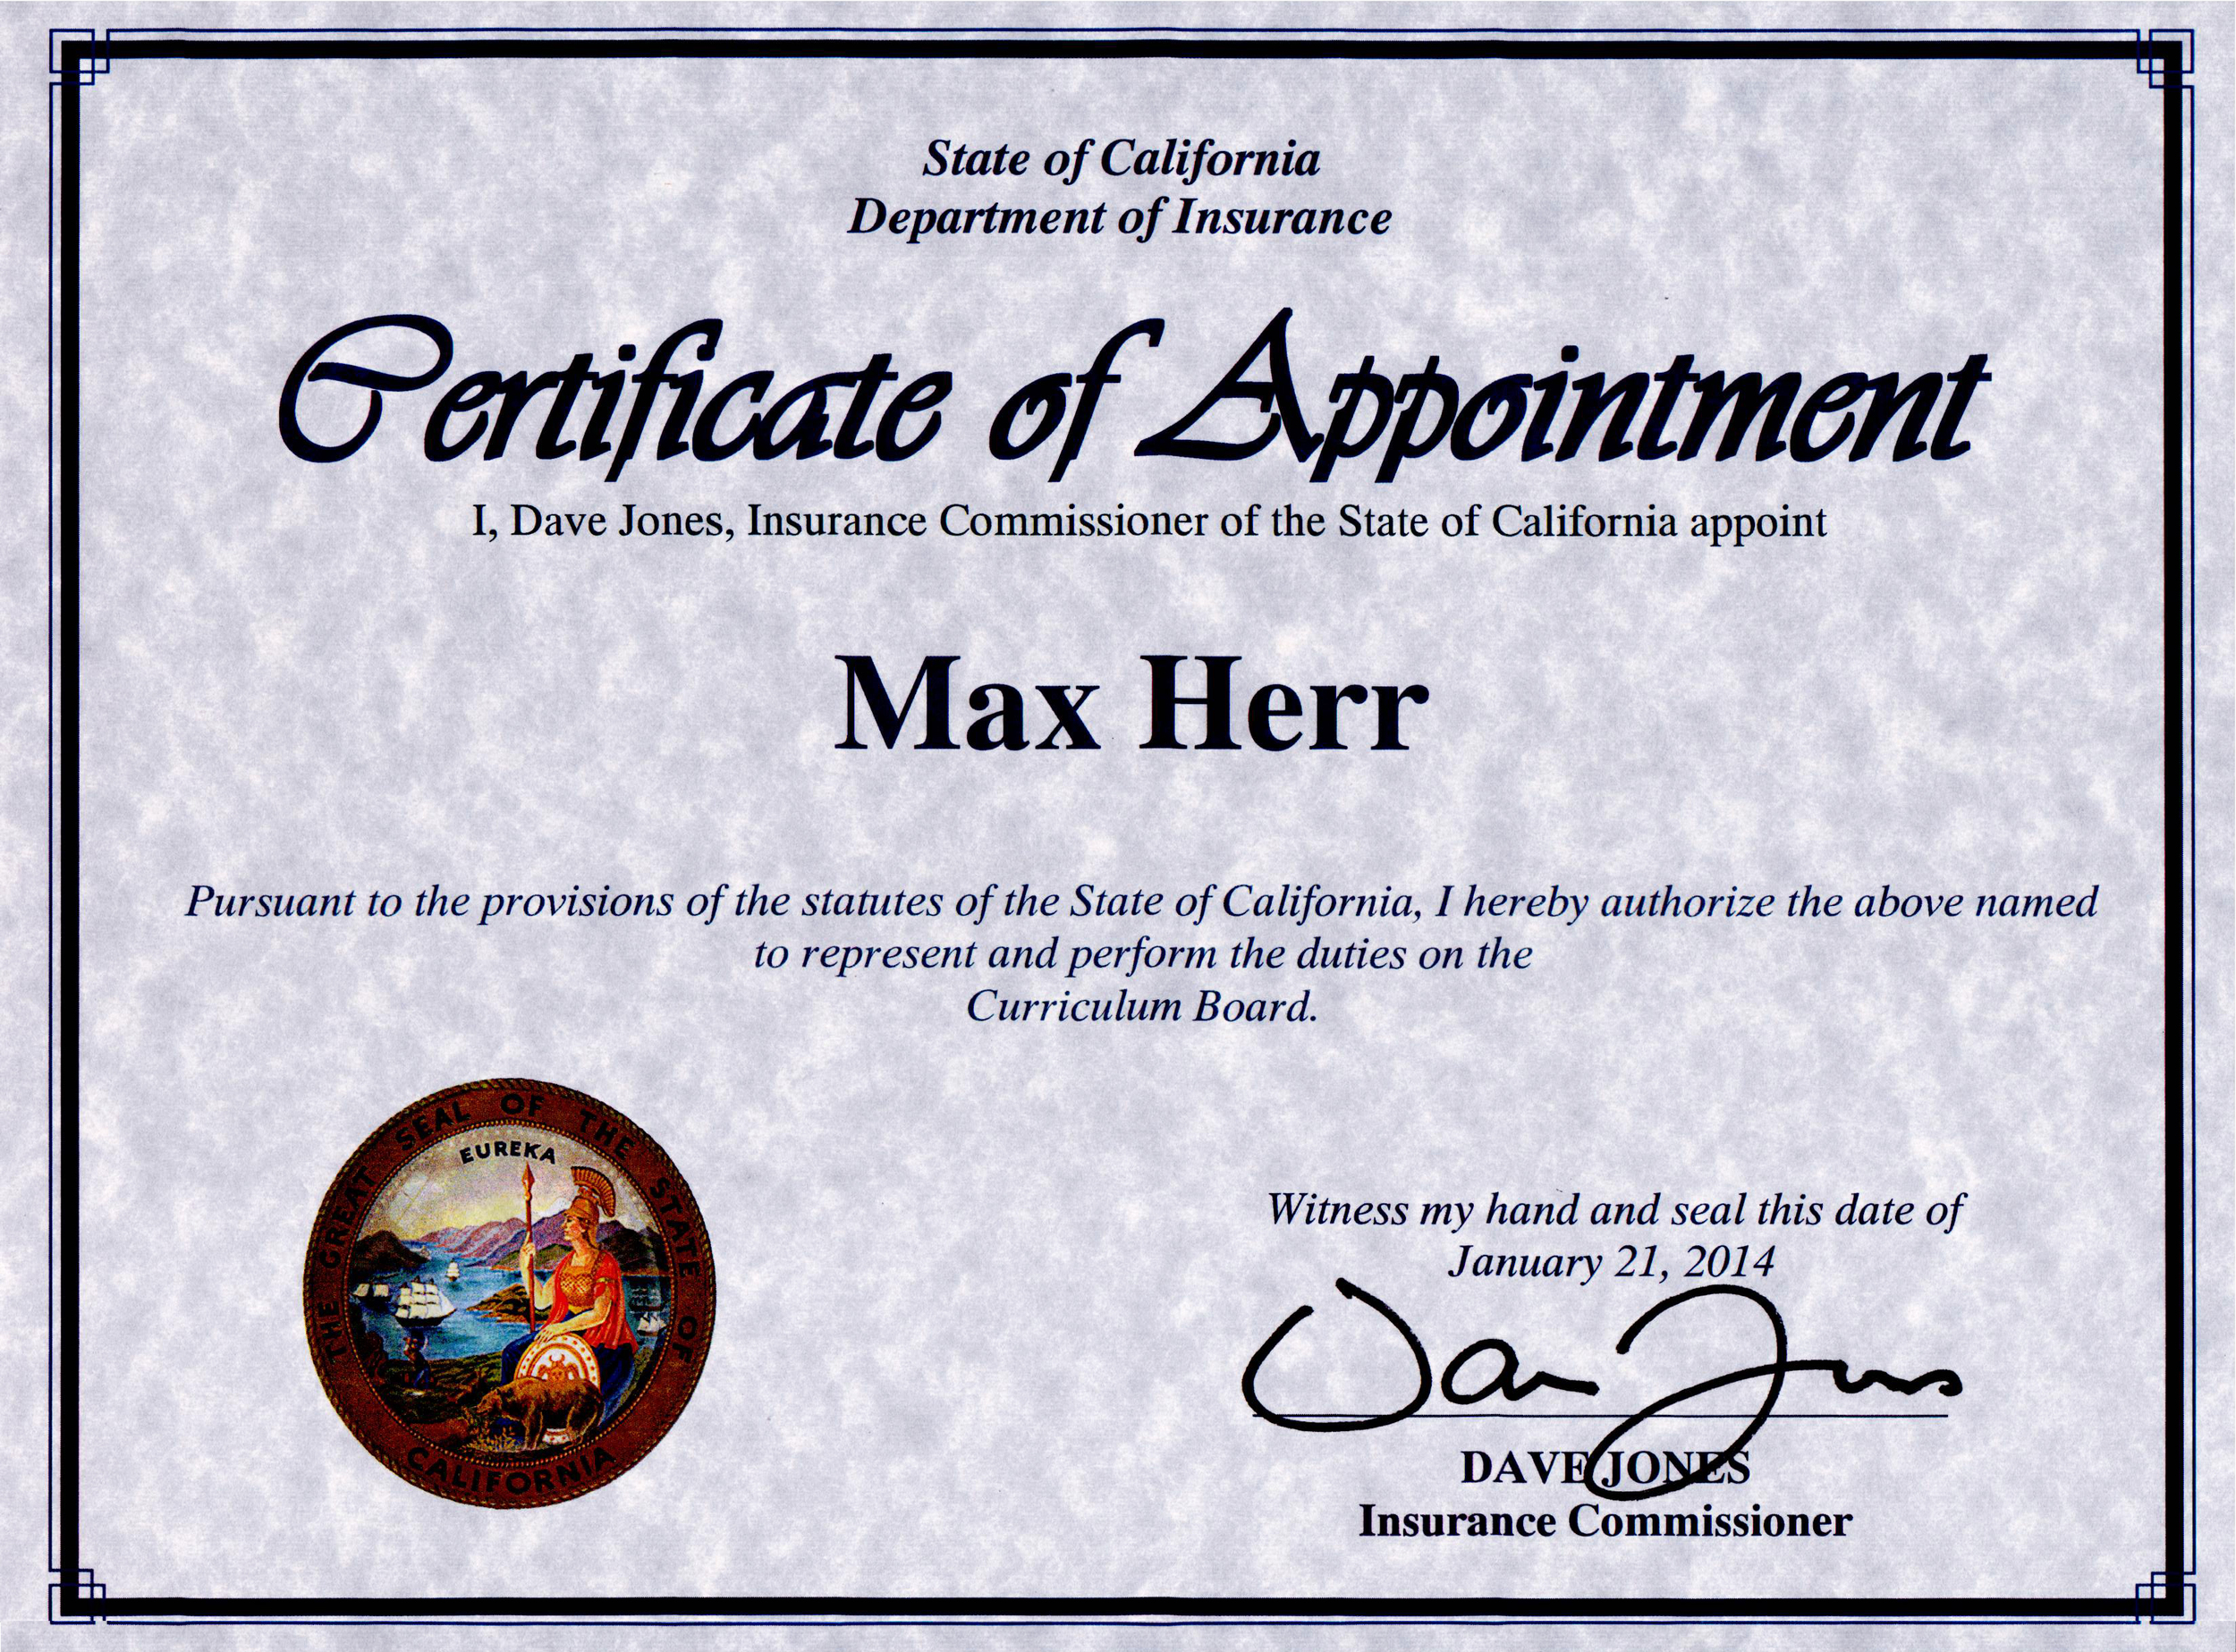 Certificate of Appointment.jpg